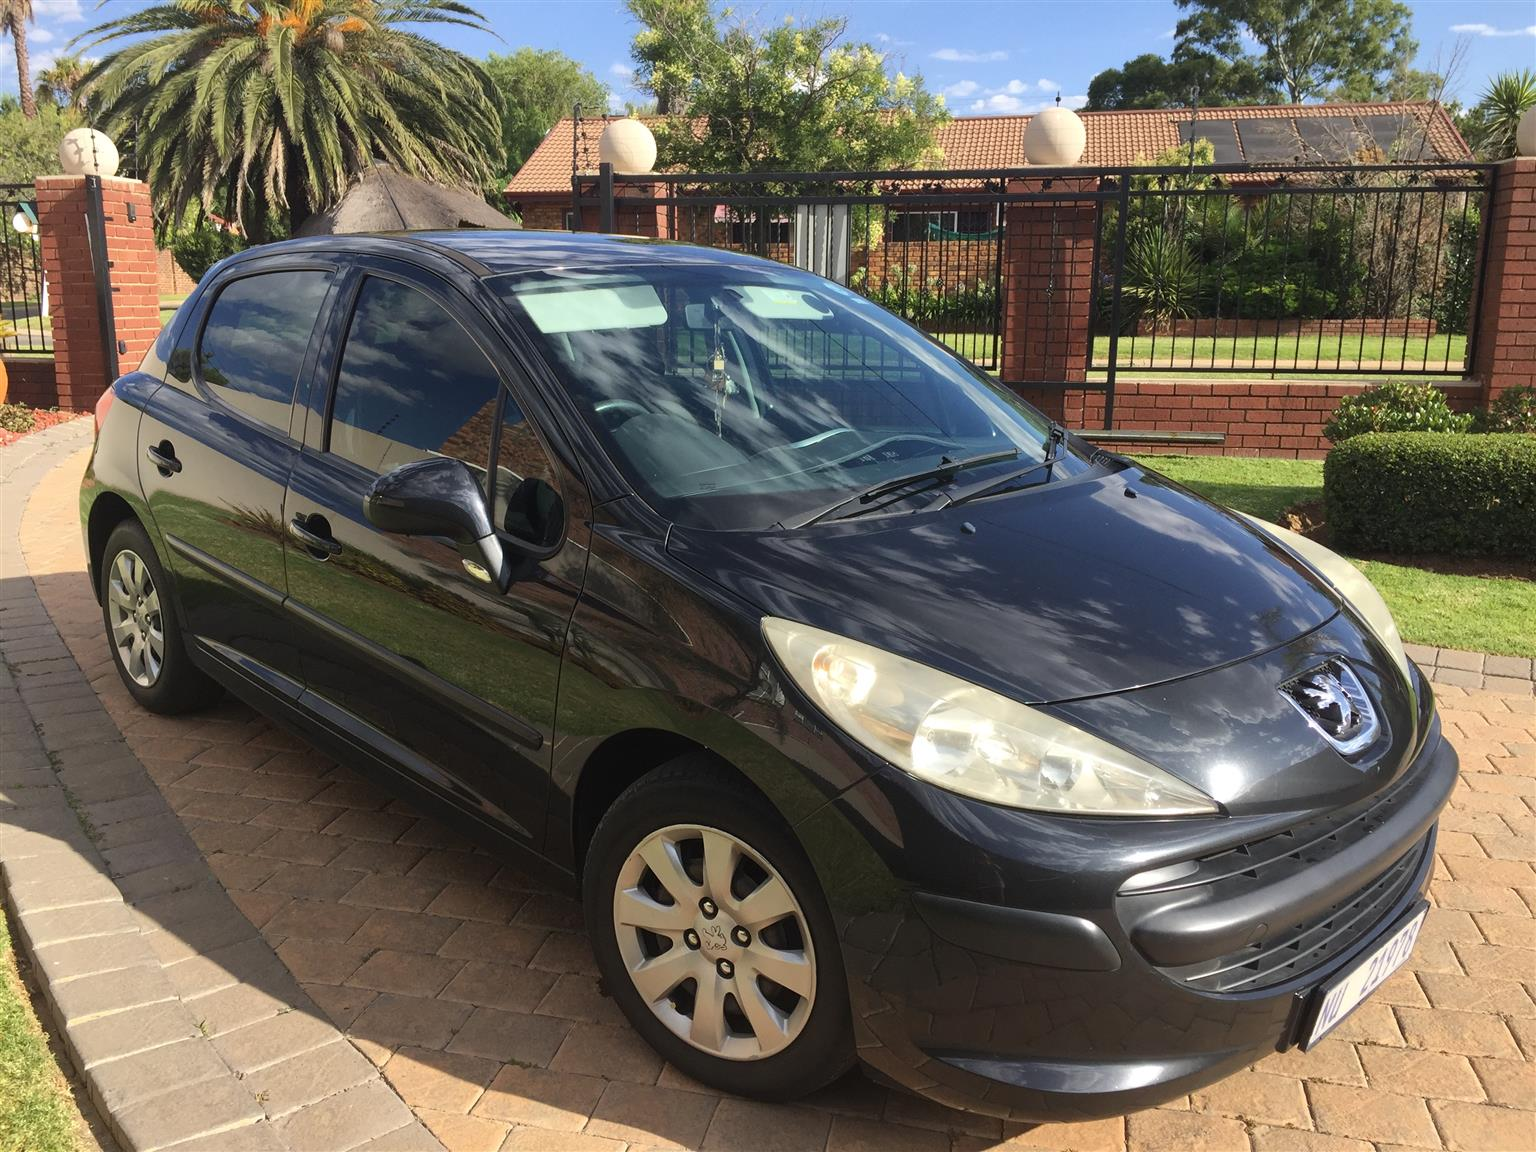 2007 Peugeot 207 1.4 5 door XR Plus